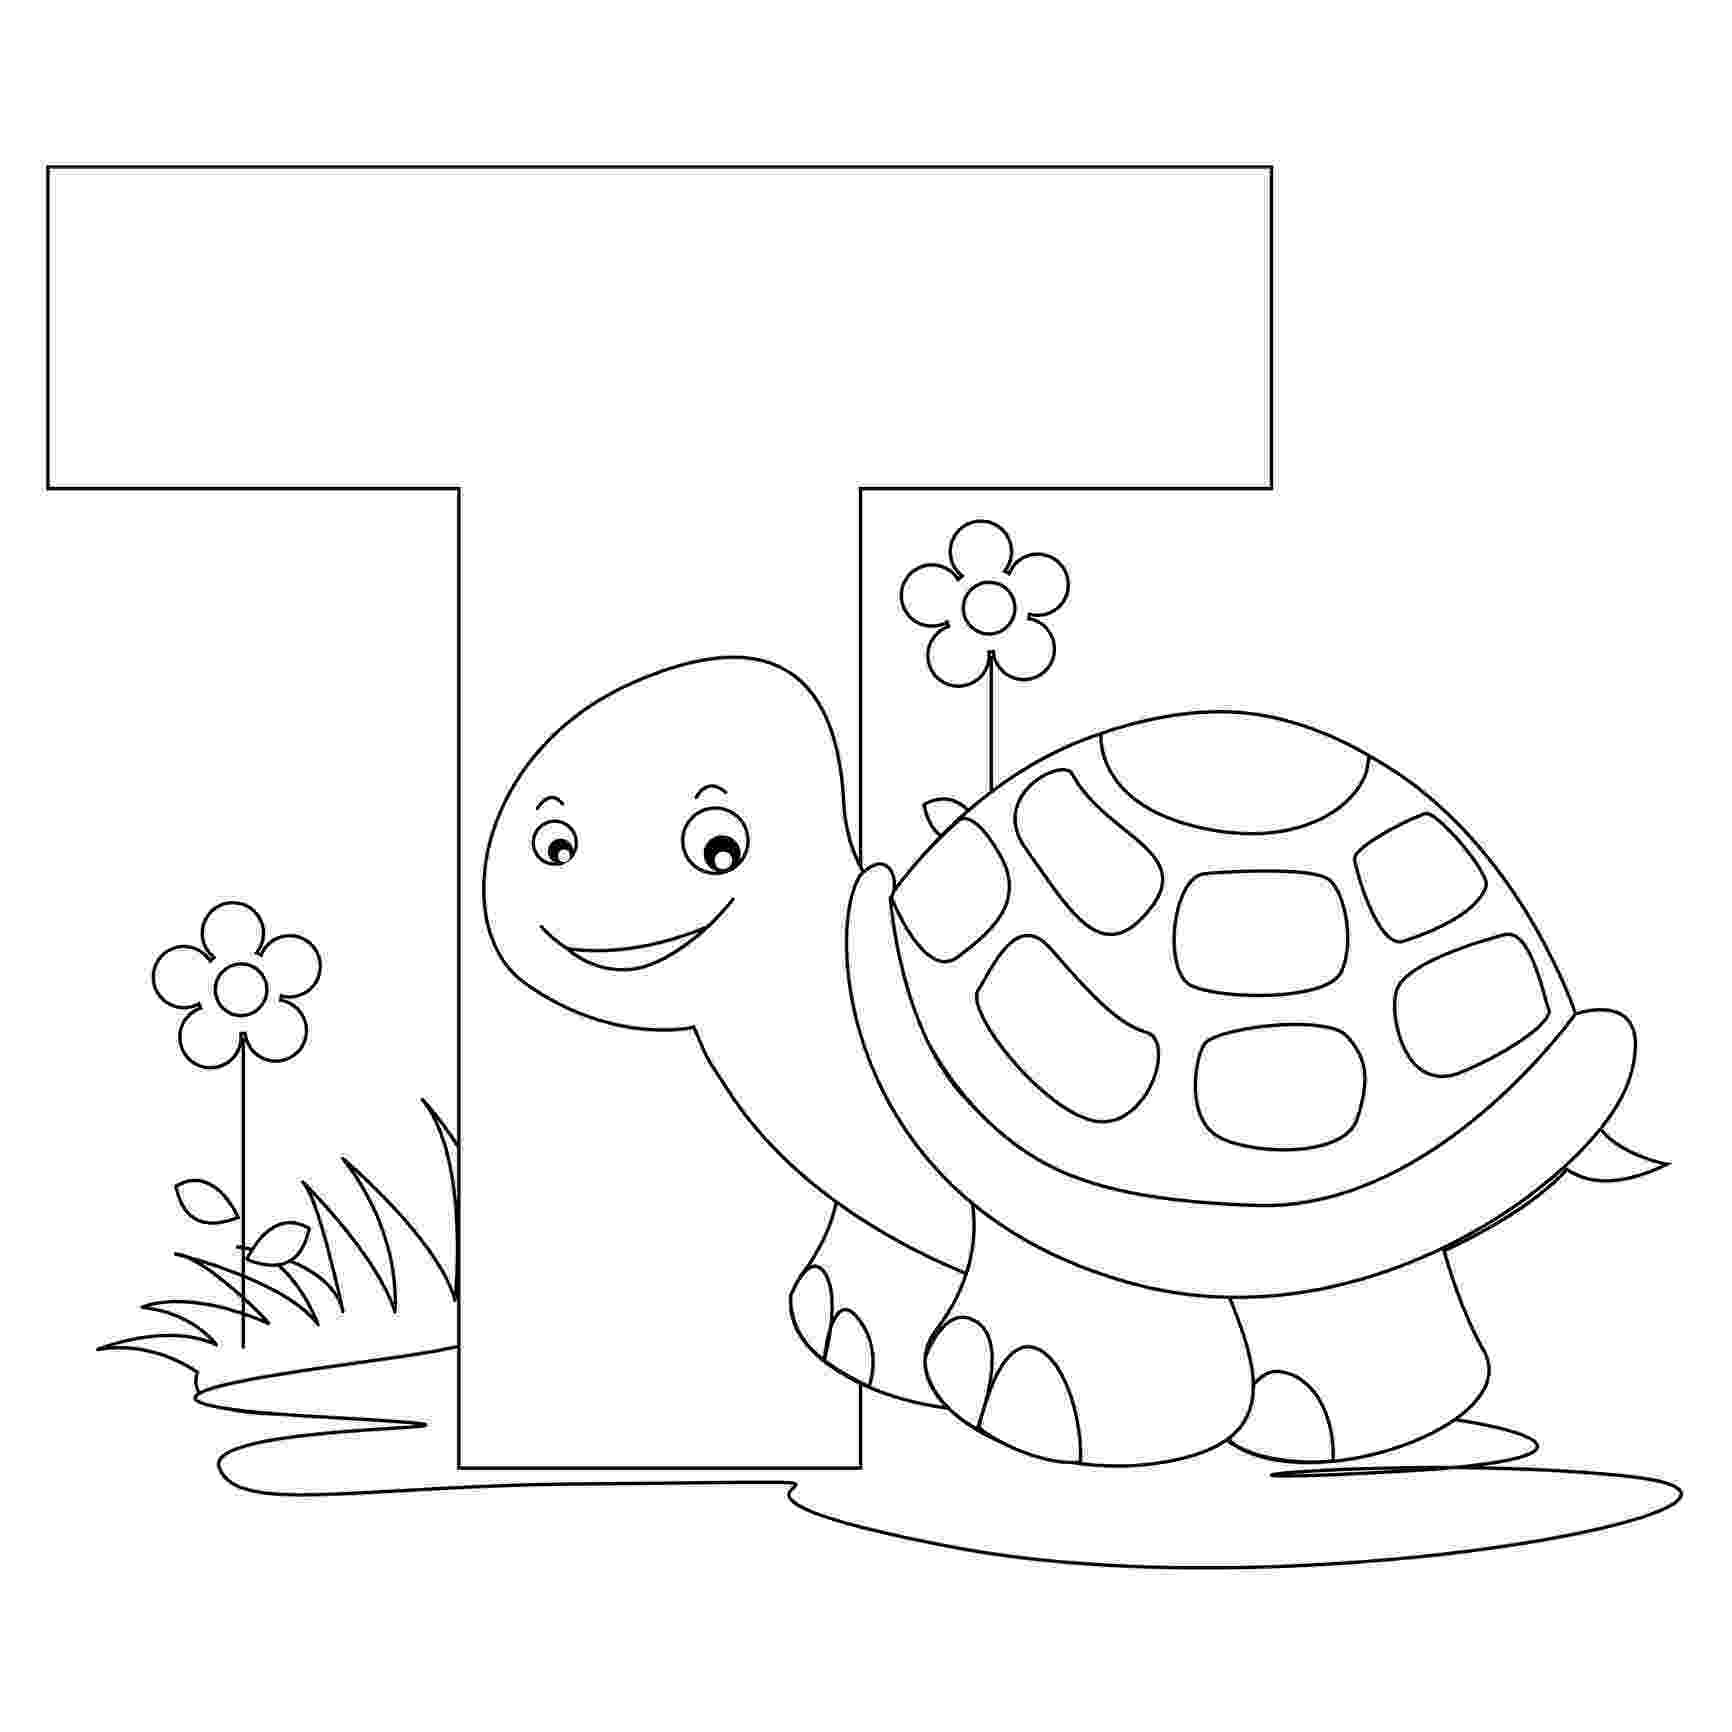 coloring pages of letters free printable alphabet coloring pages for kids best of pages coloring letters